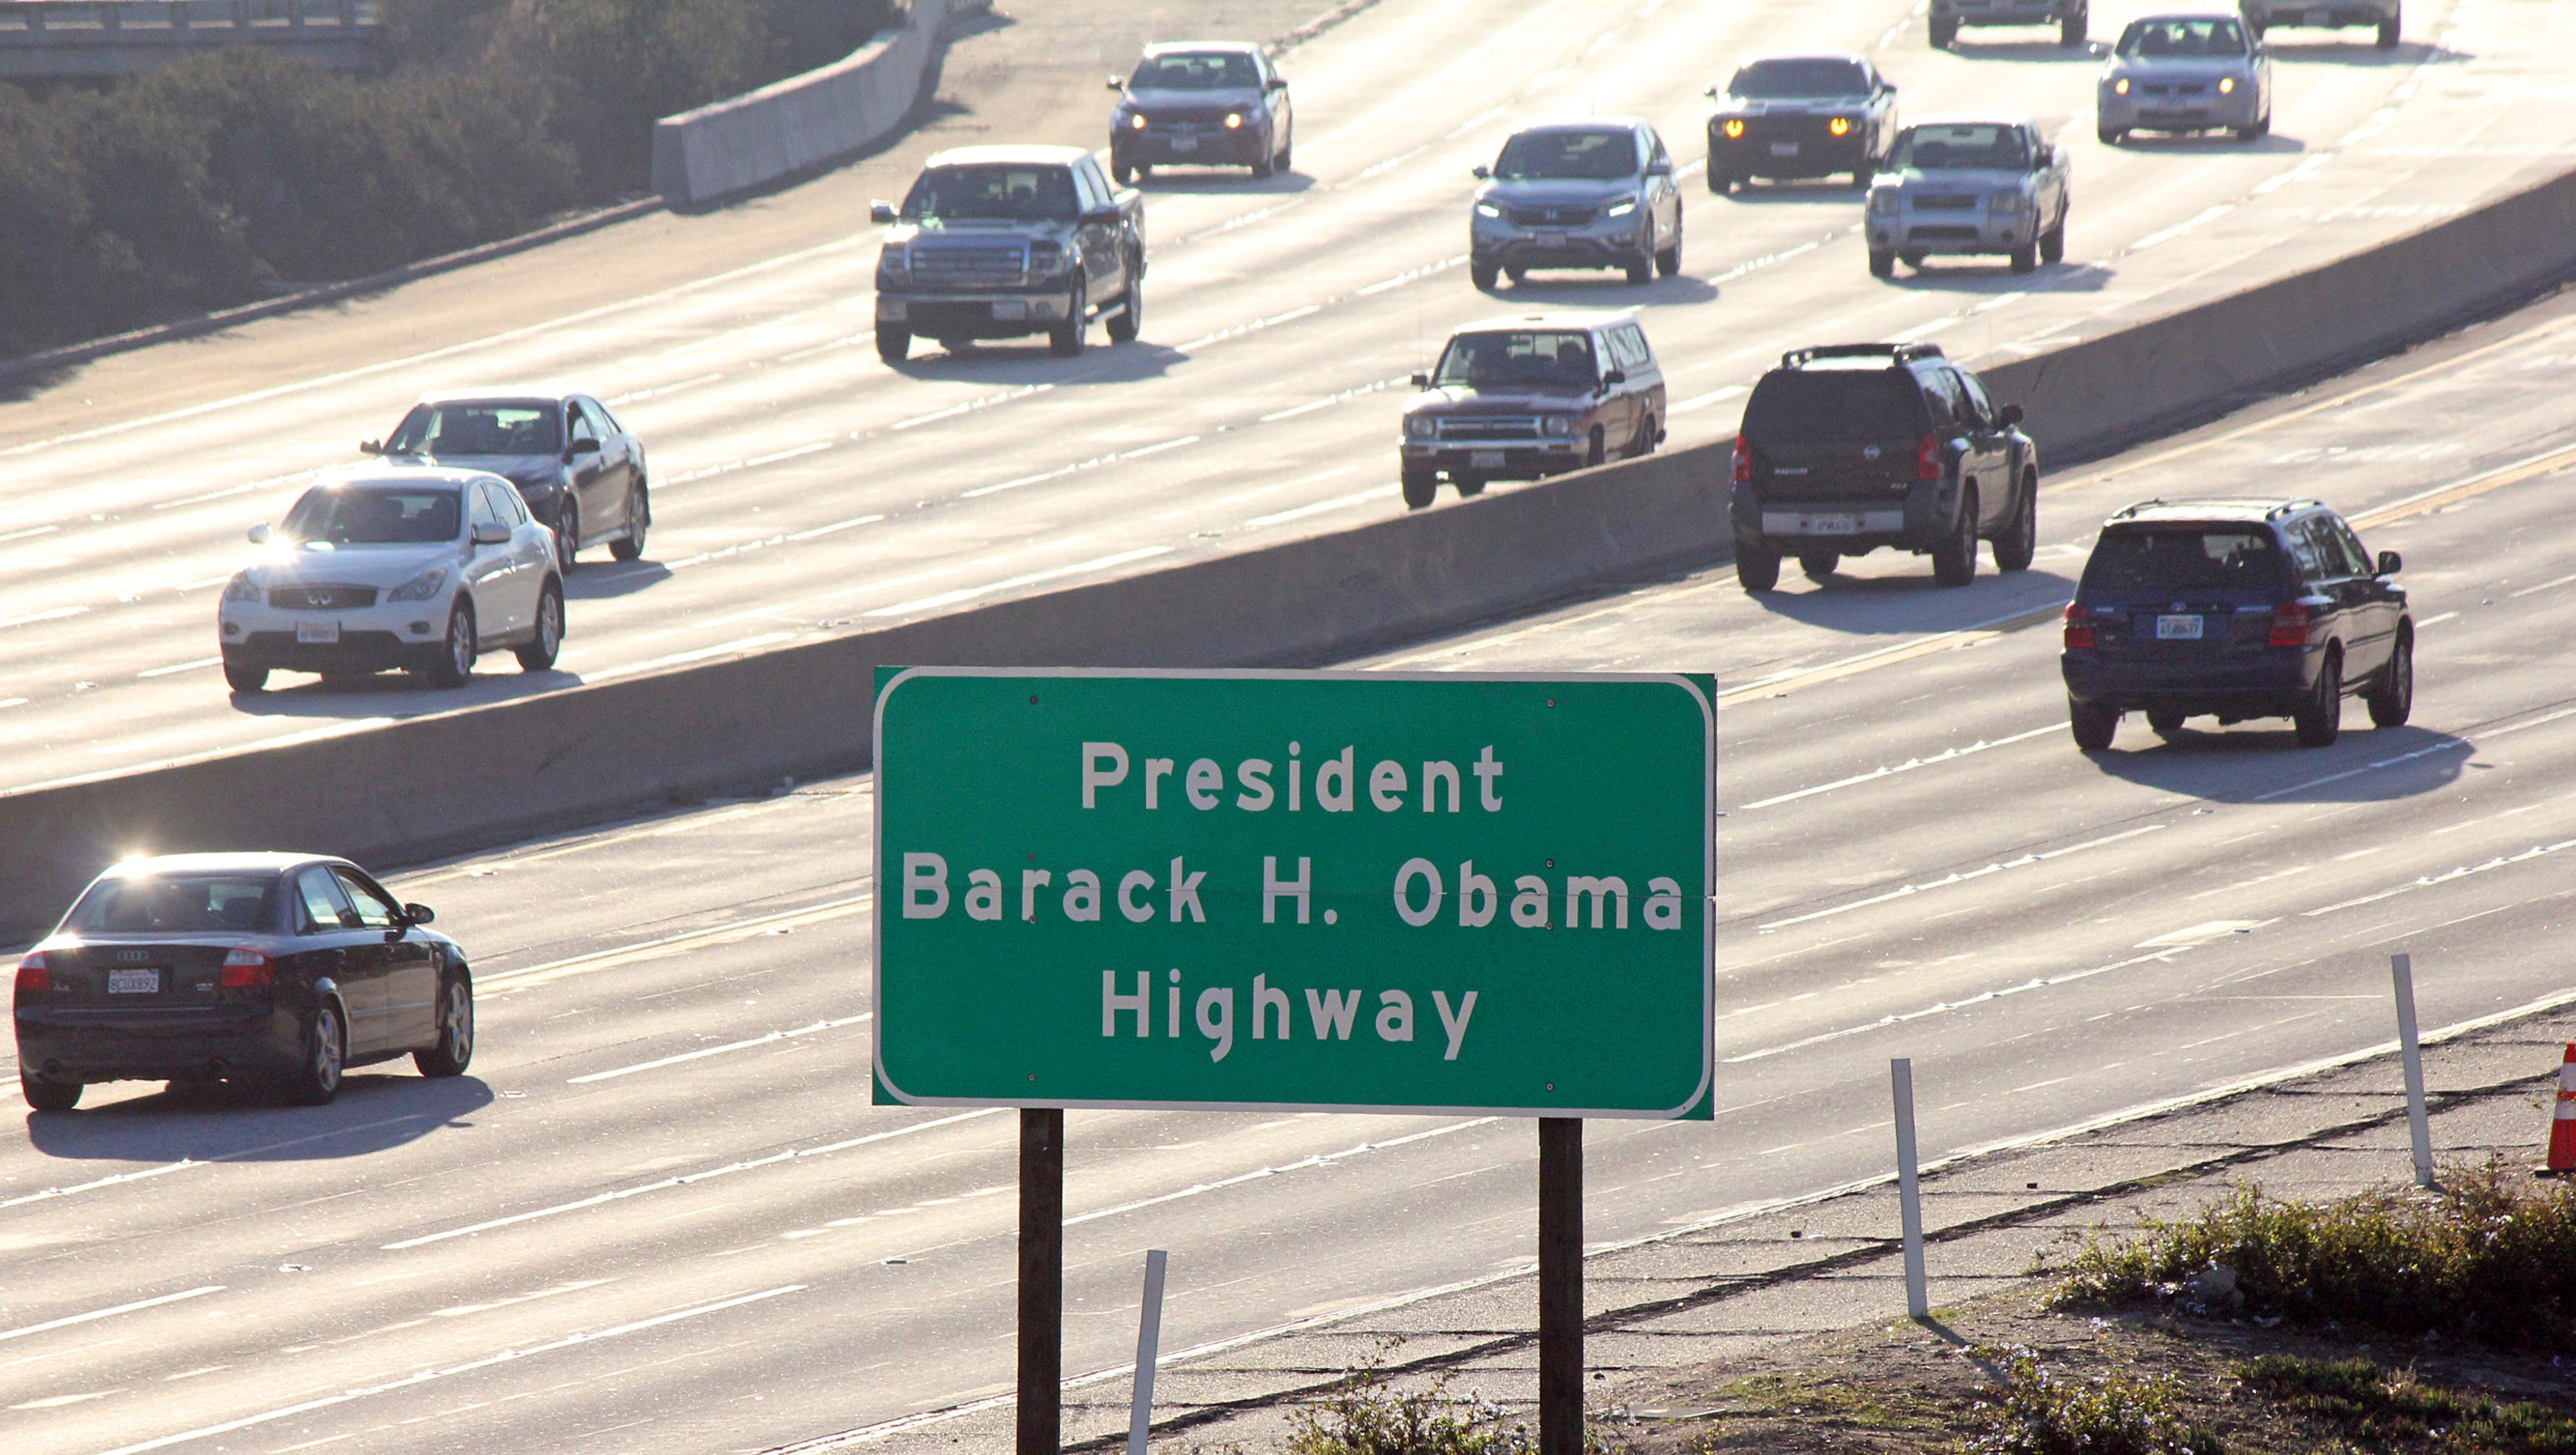 More cities add Barack Obama's name to landmarks, highways